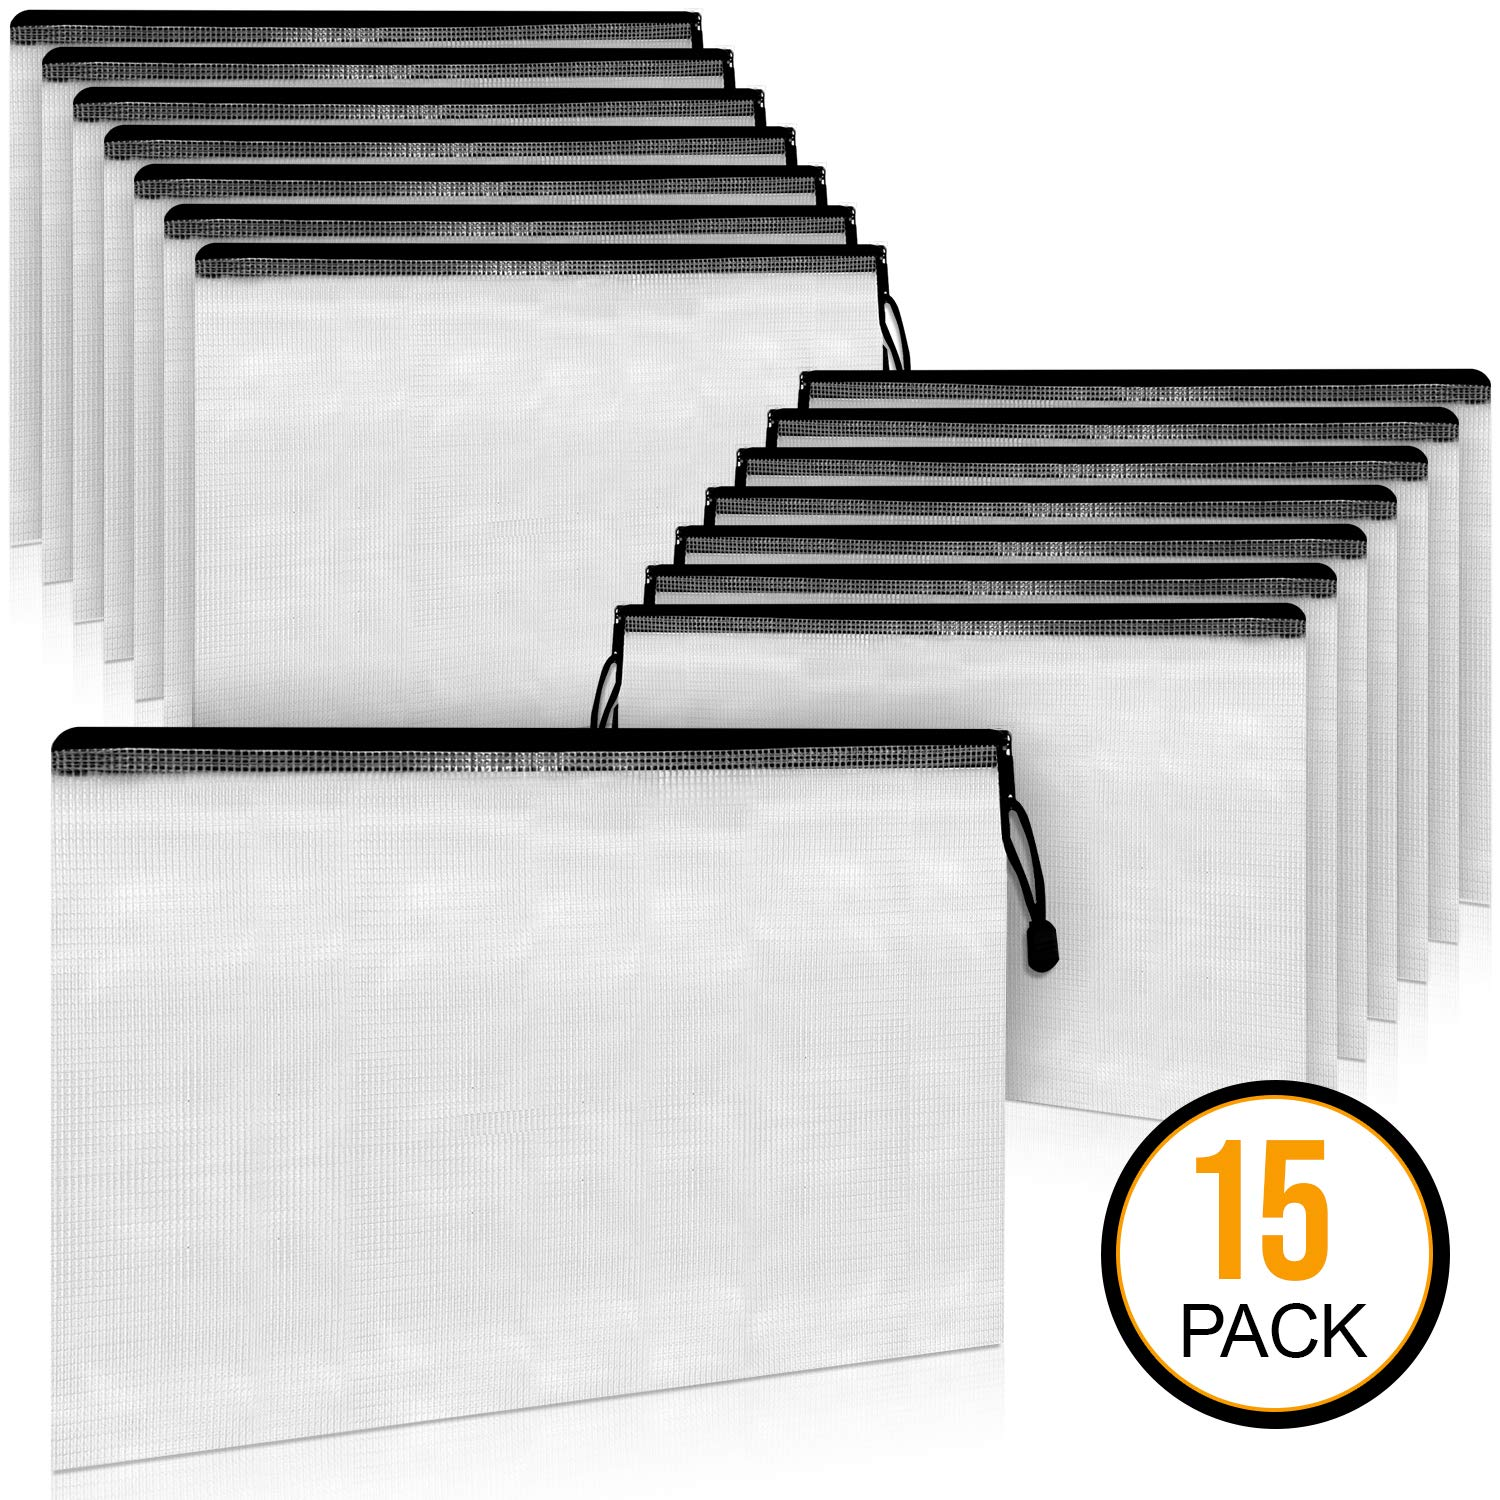 A4 Document Holder with Zipper (15 Pack) - Large Stylish Multipurpose Organizer Folder for School Supplies, Business Papers, Files and More - Clear Mesh Weatherproof Protection Storage Sheet by Tinksparke